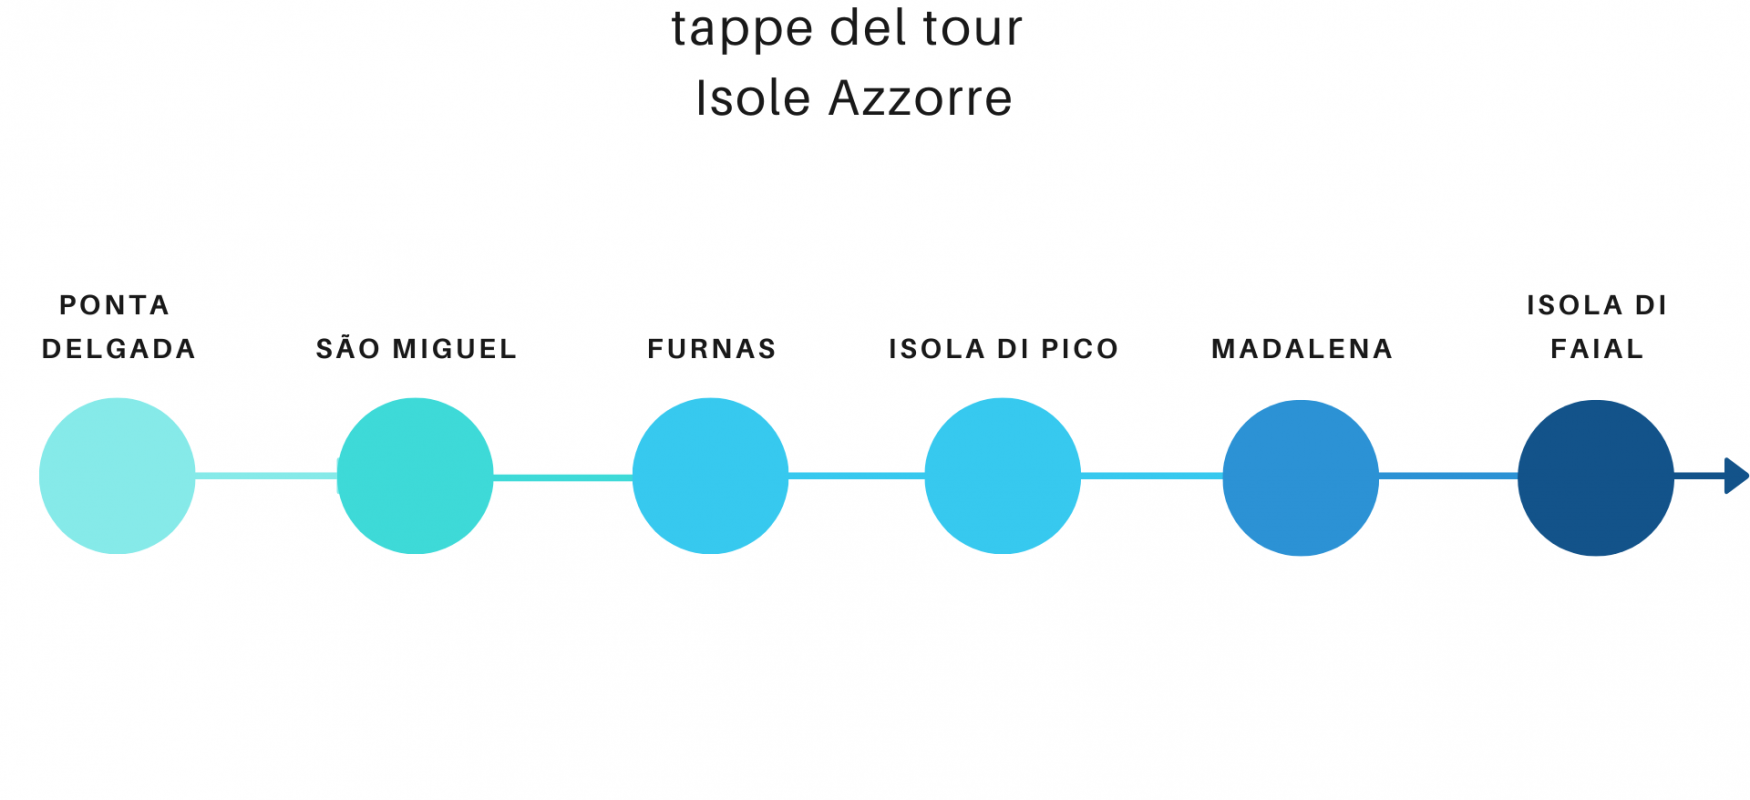 tappe isole azzorre